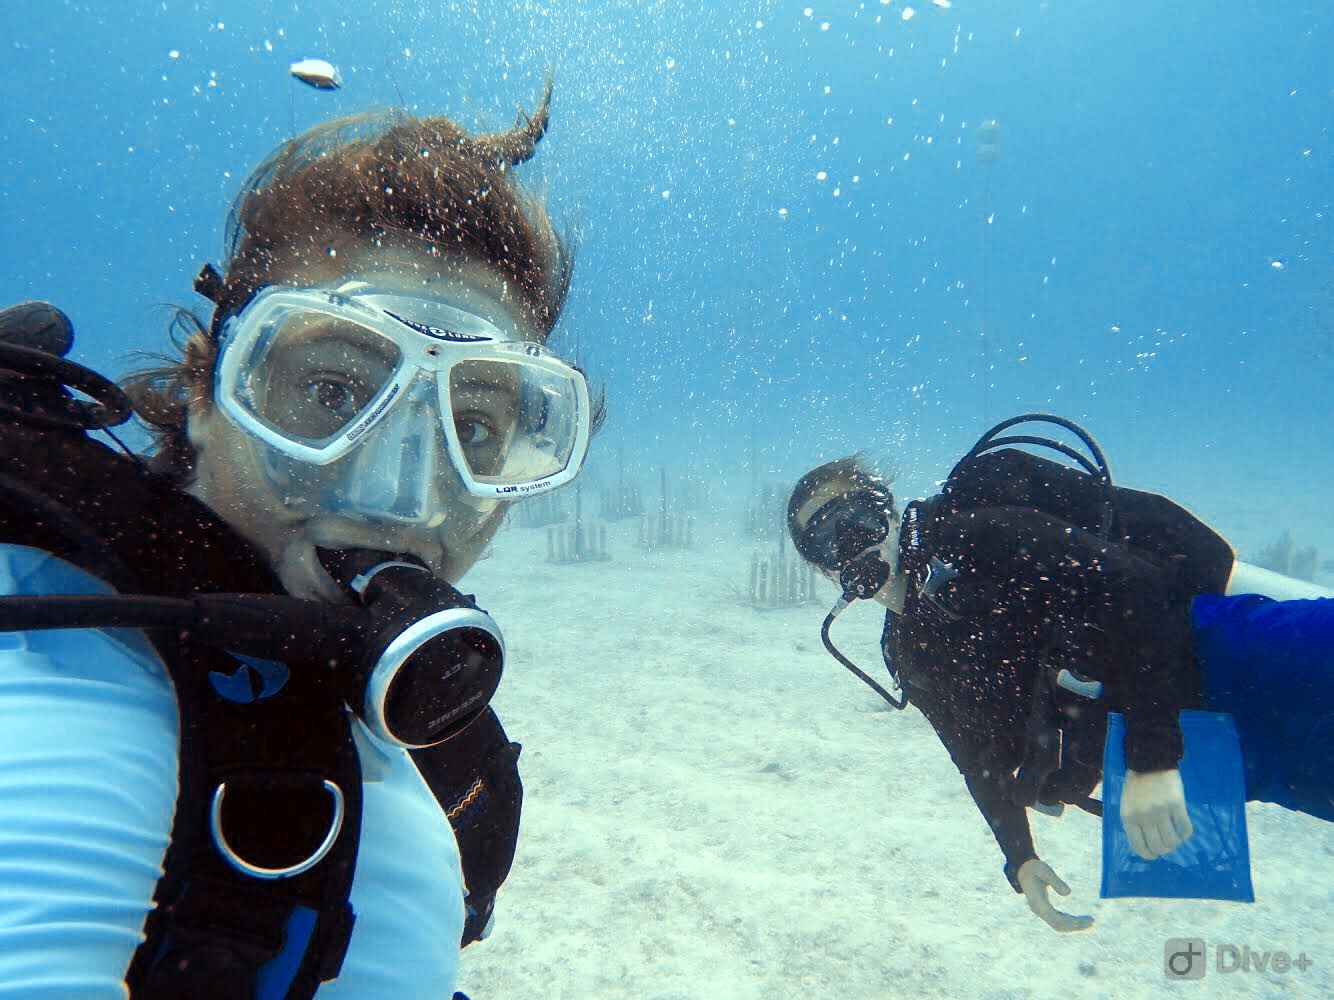 When the ocean gives you great visibility...you take selfies!!